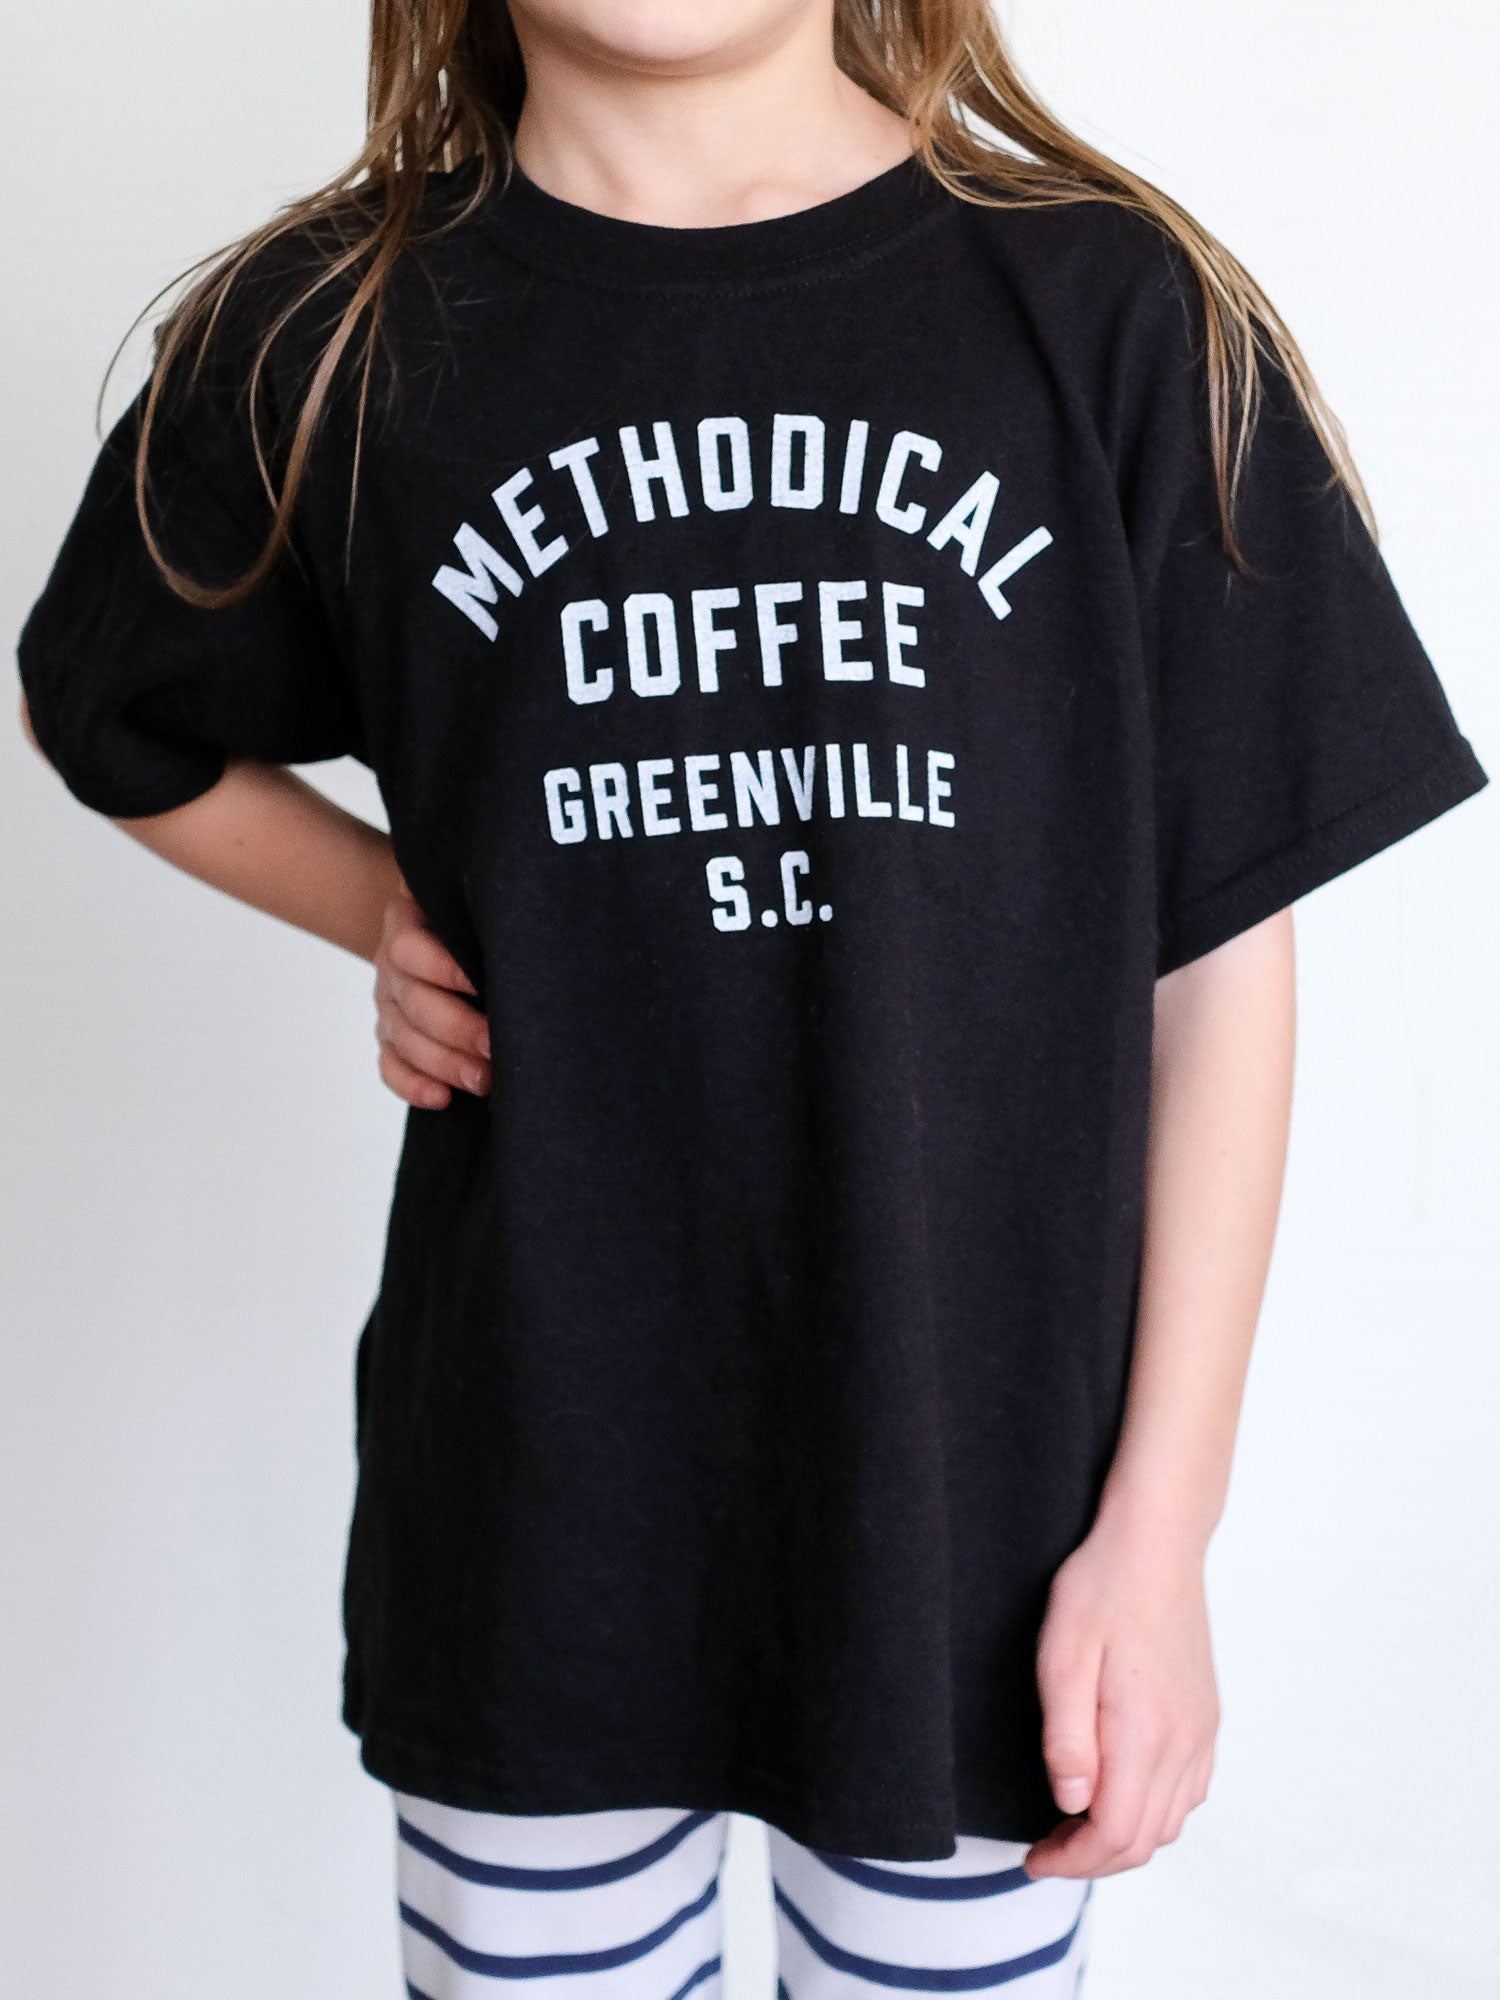 Kids Methodical T-Shirt